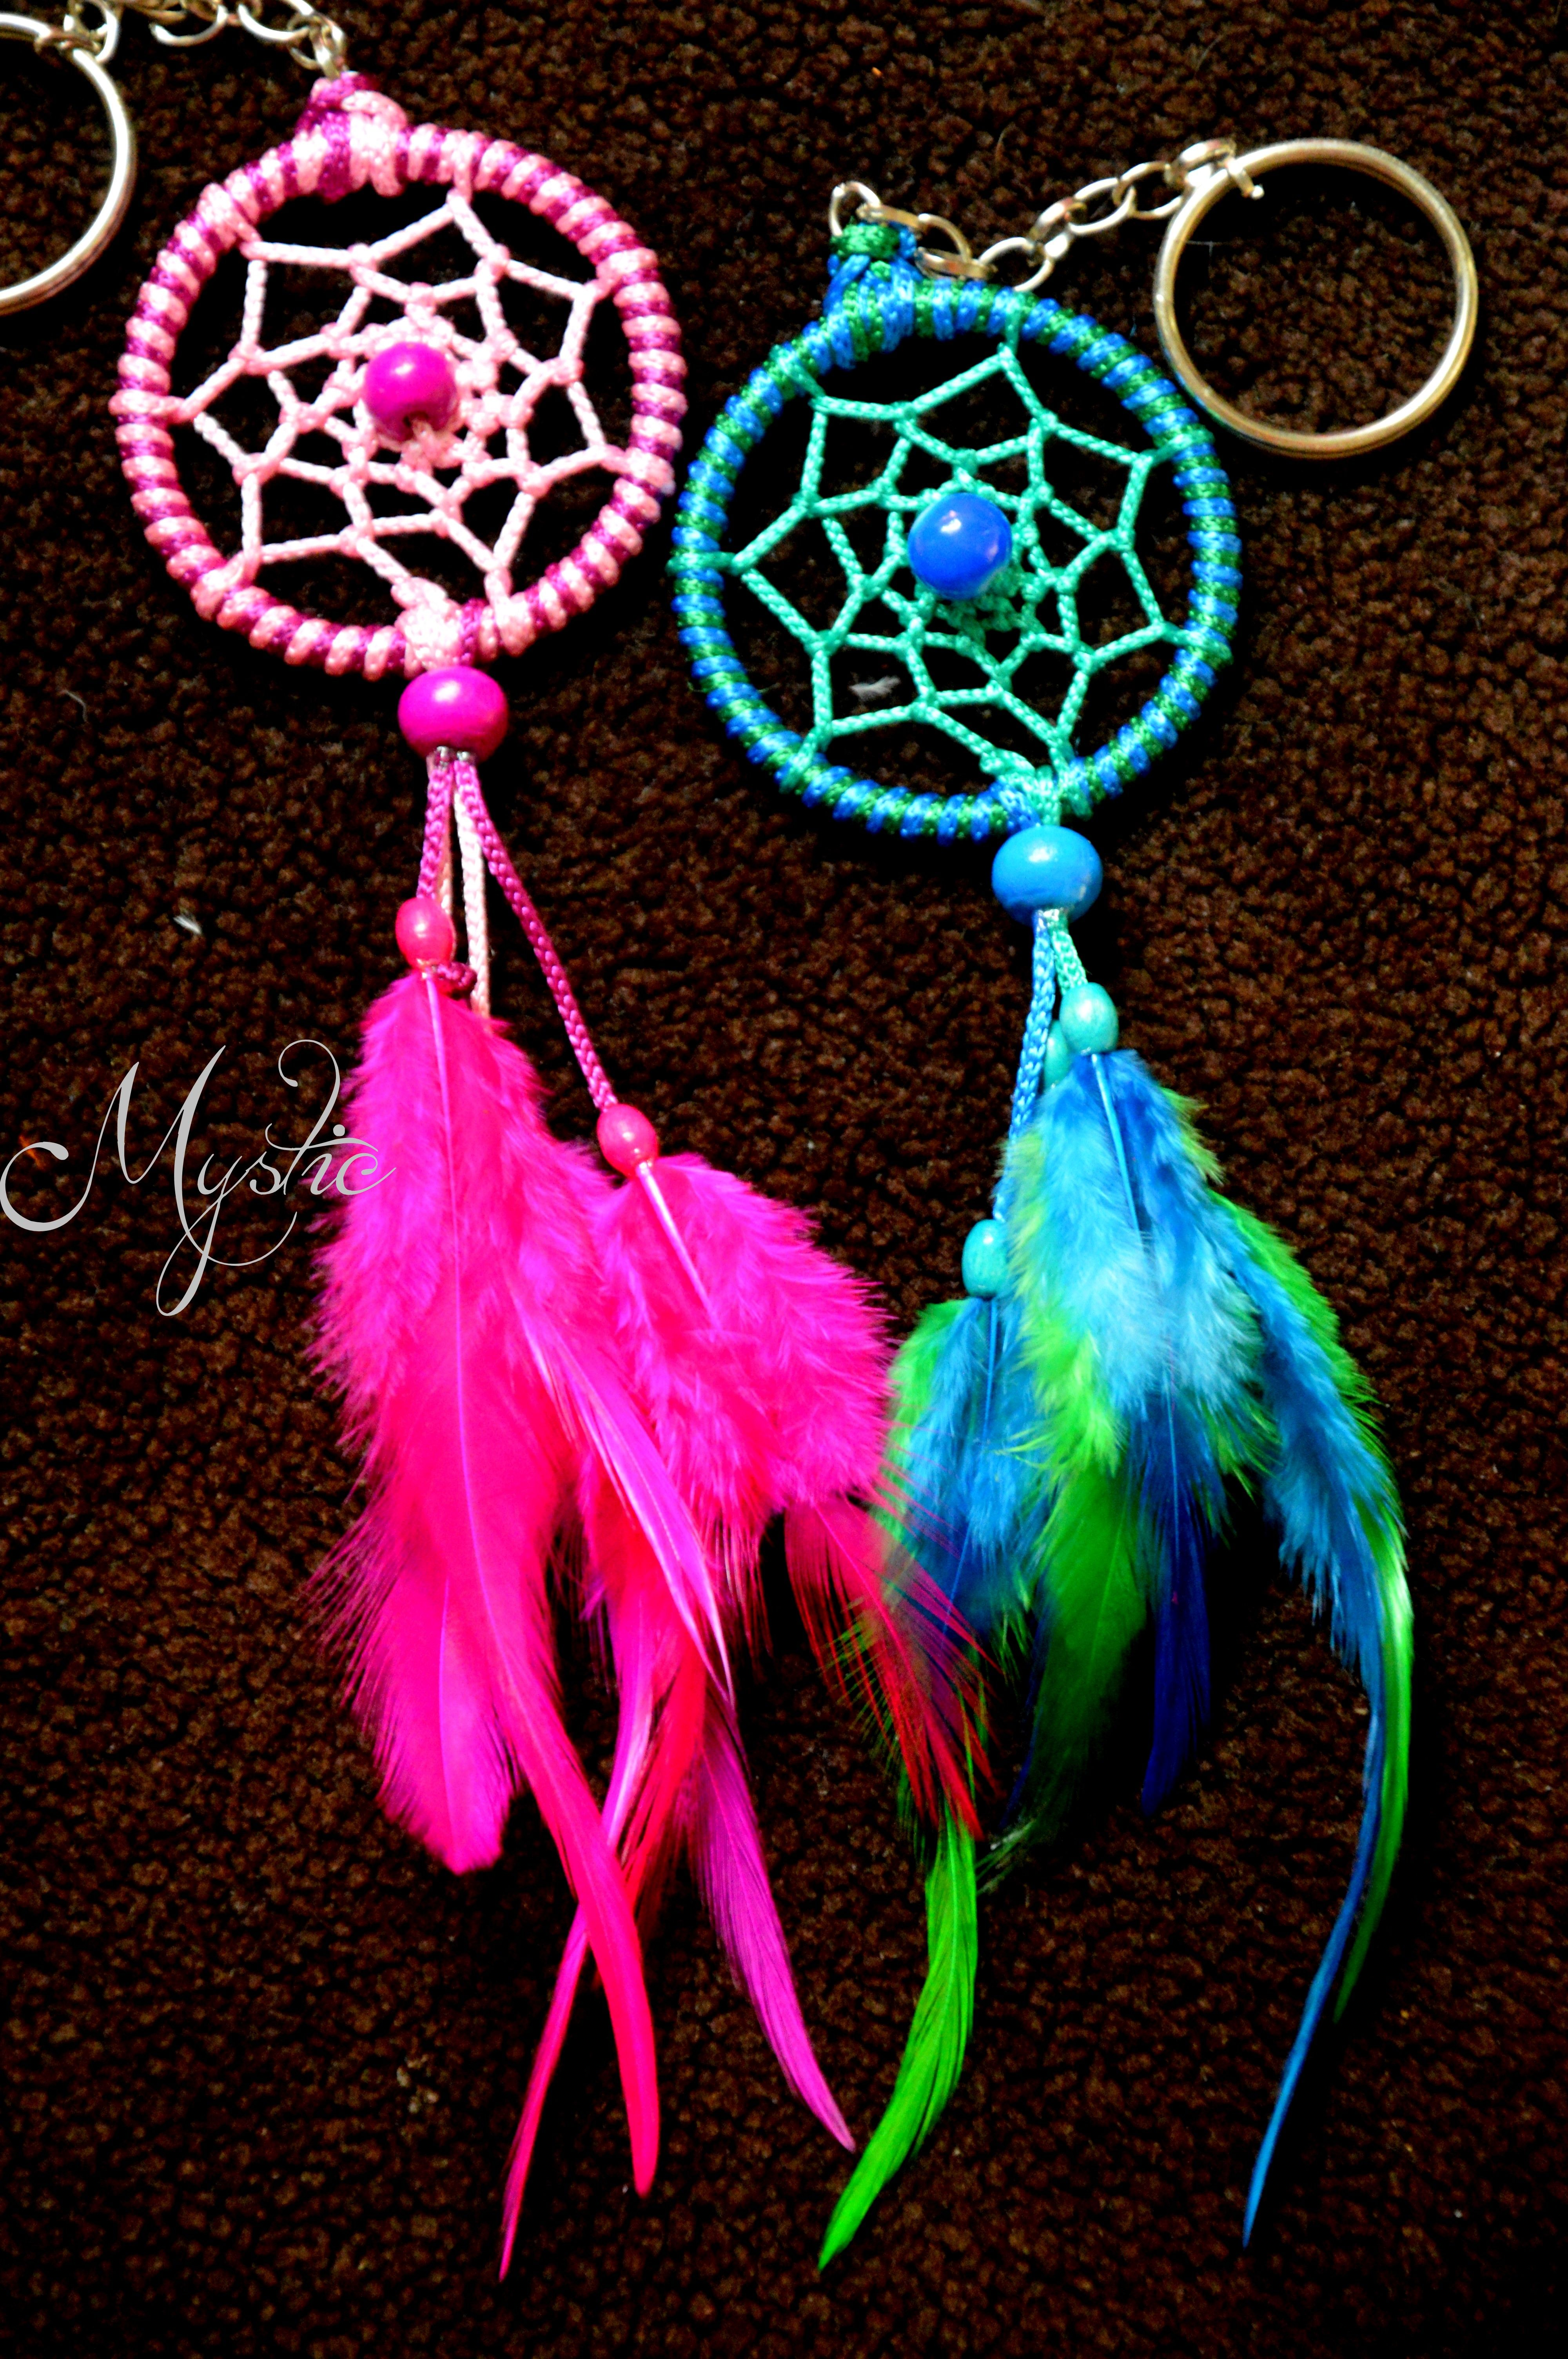 customized dreamcatchers by mystic anusha bhadauria. Black Bedroom Furniture Sets. Home Design Ideas